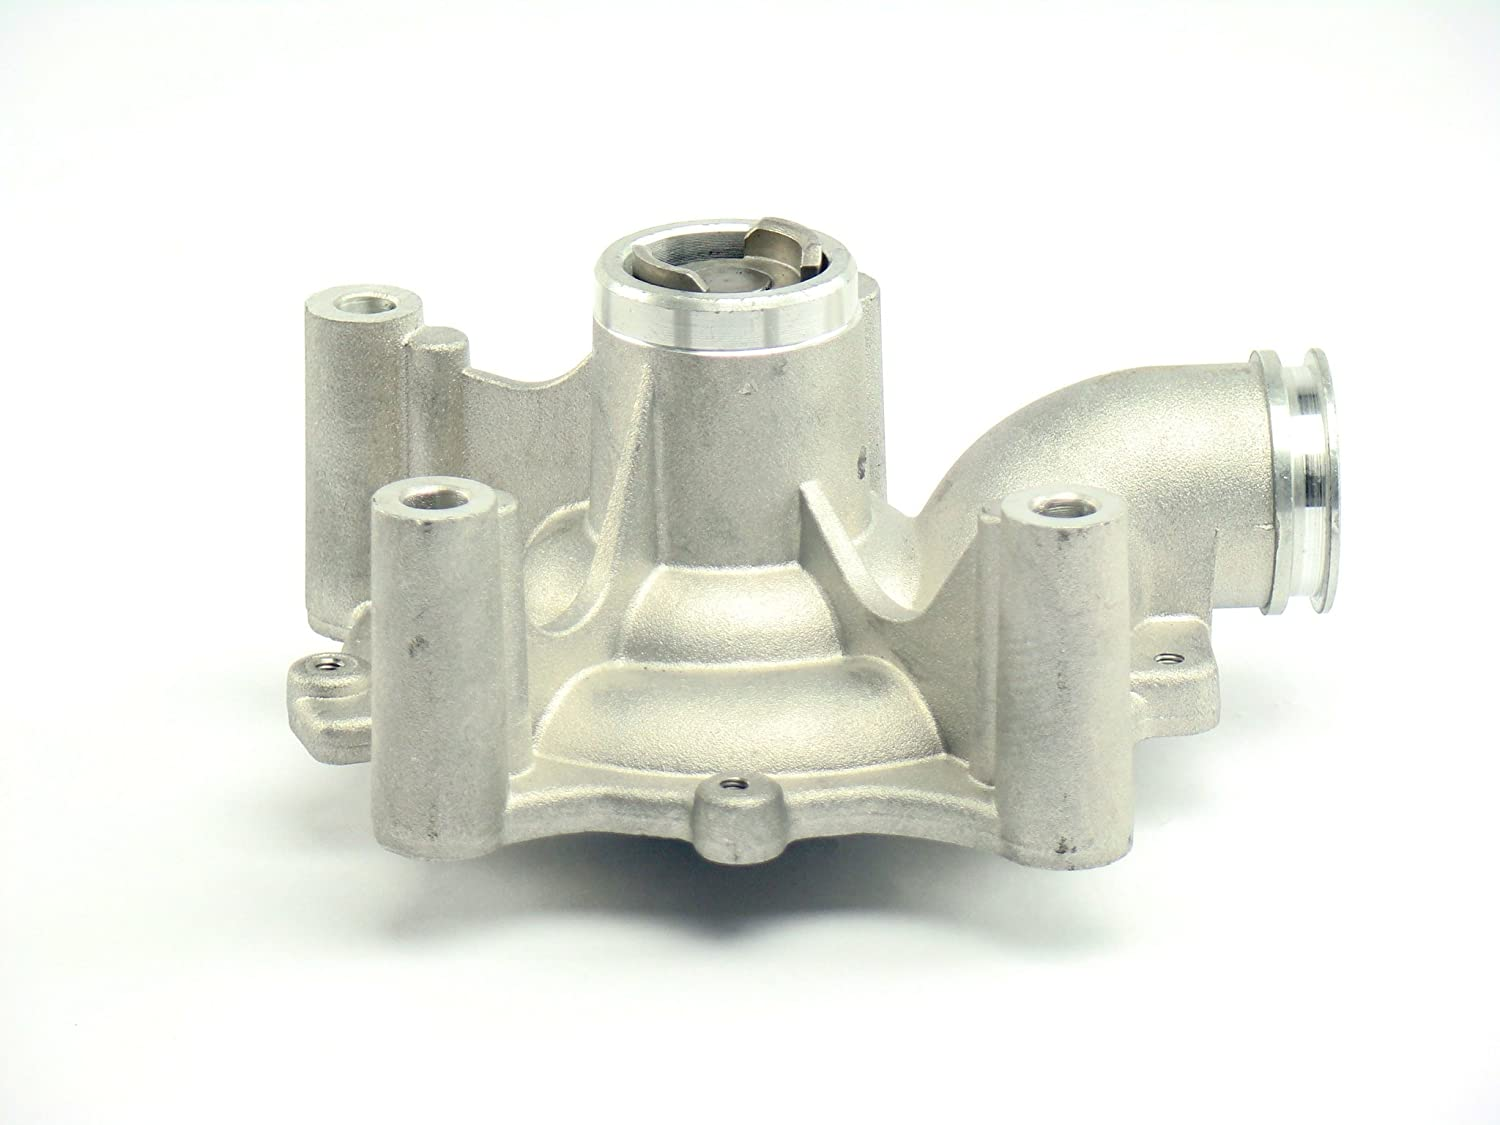 OAW BM2250 Engine Water Pump for 02-08 Mini Cooper S Supercharged 1.6L